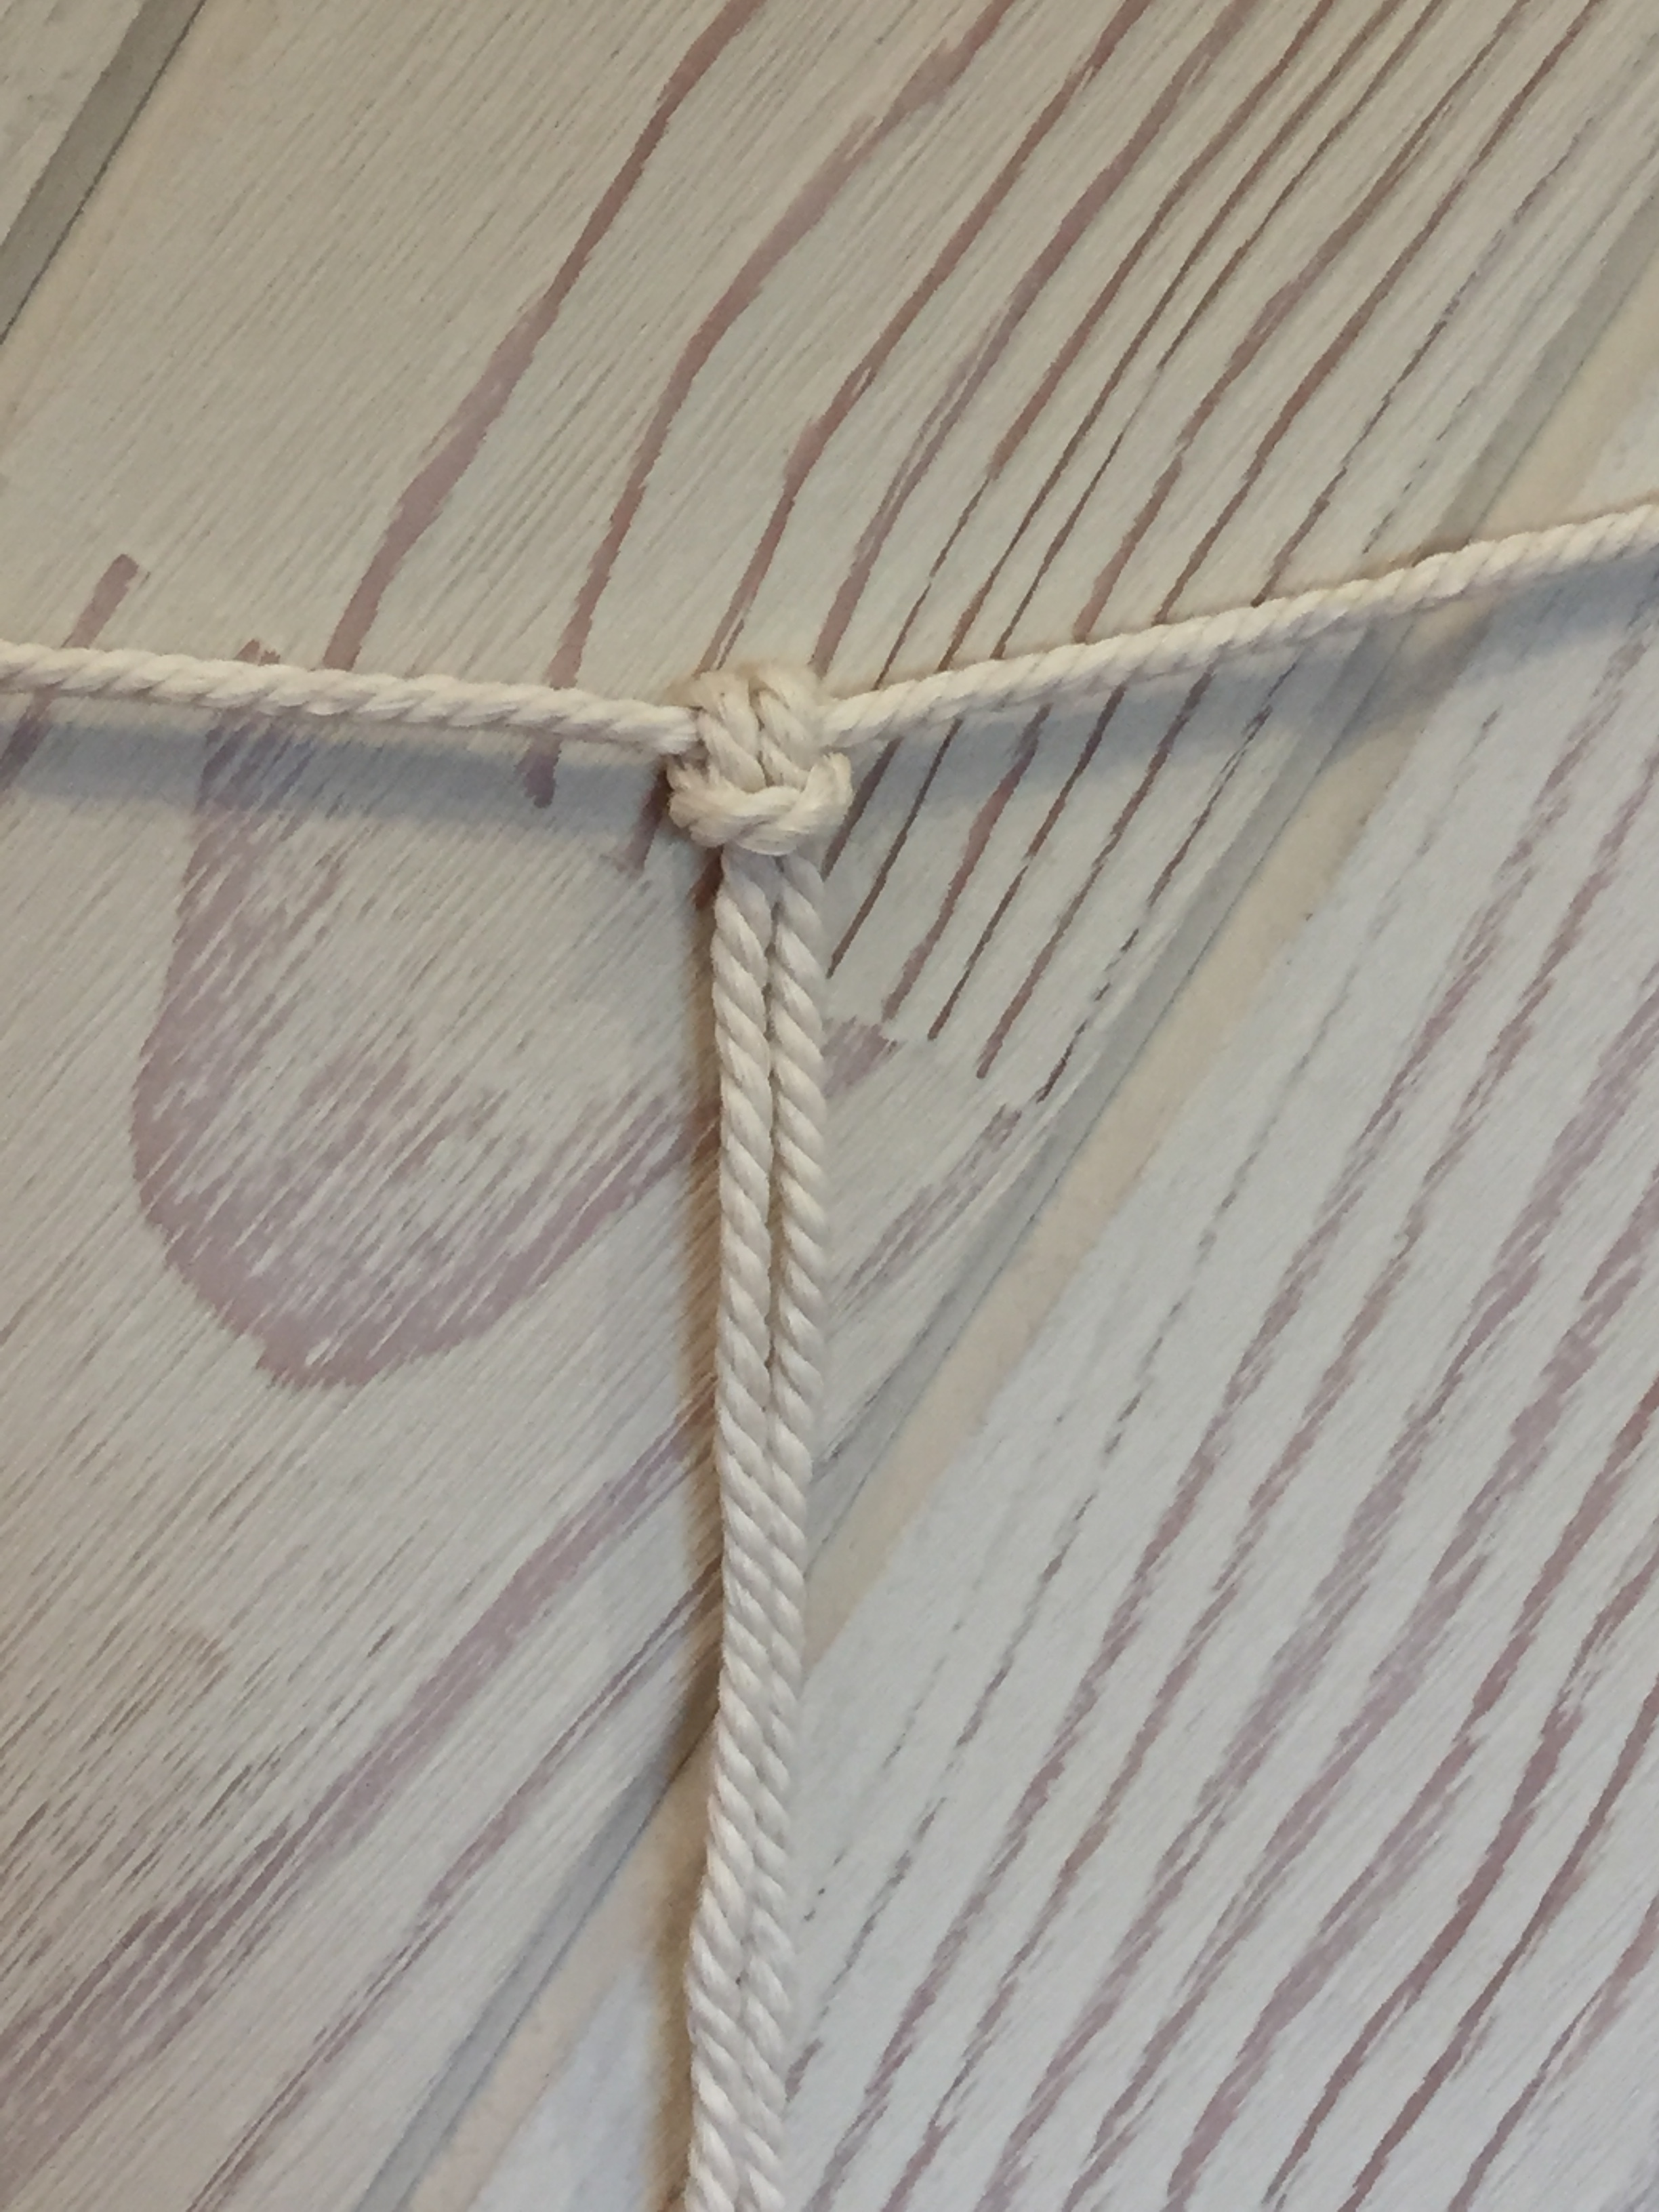 Loop knot on the main line. -